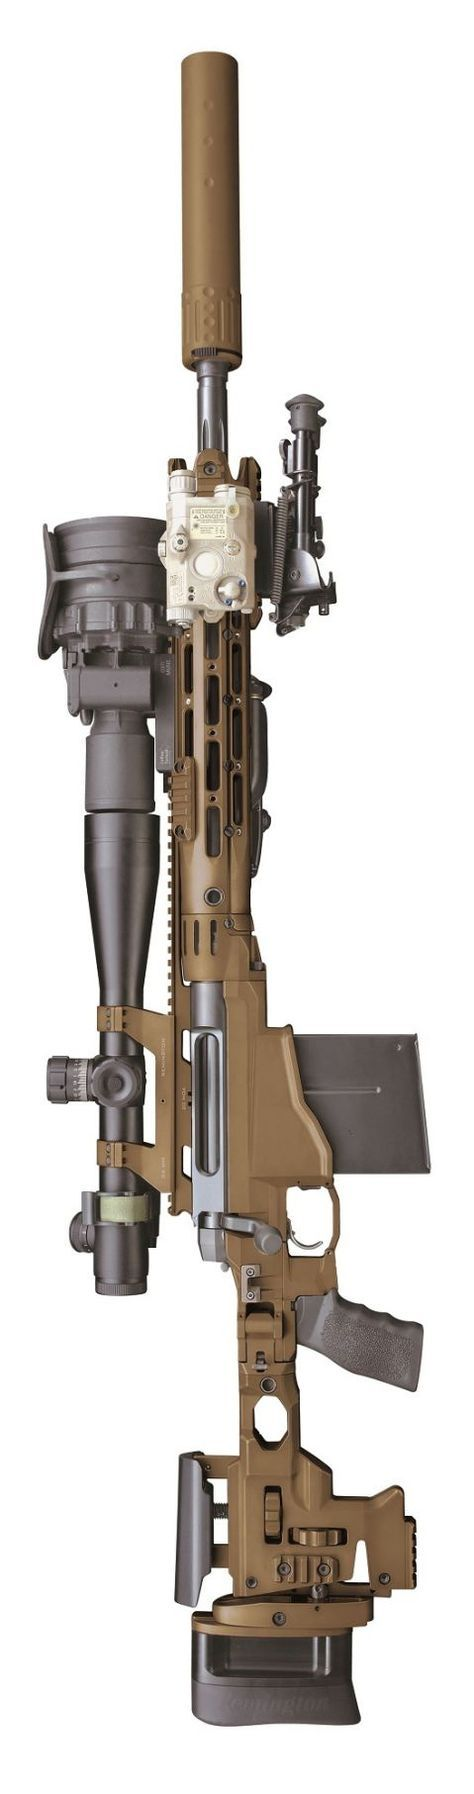 Remington MSR                                                       …